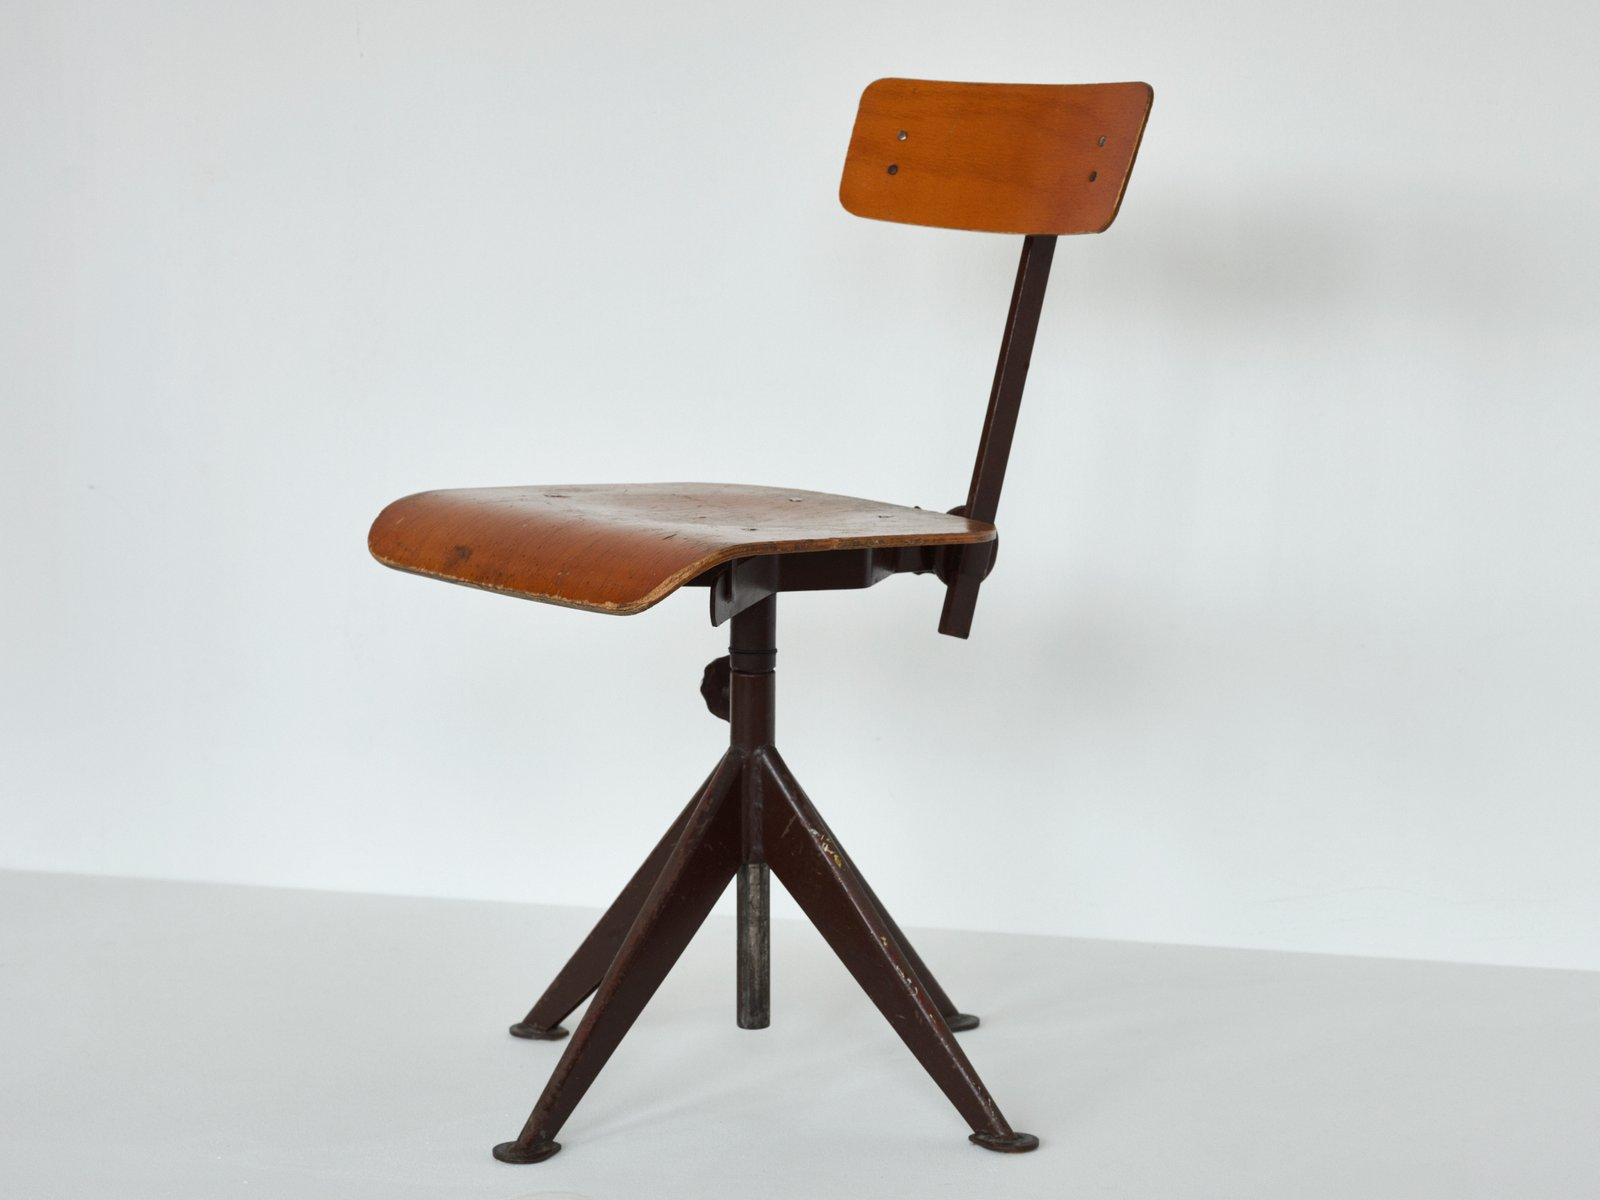 vintage swivel work chair by jean prouve for sale at pamono. Black Bedroom Furniture Sets. Home Design Ideas